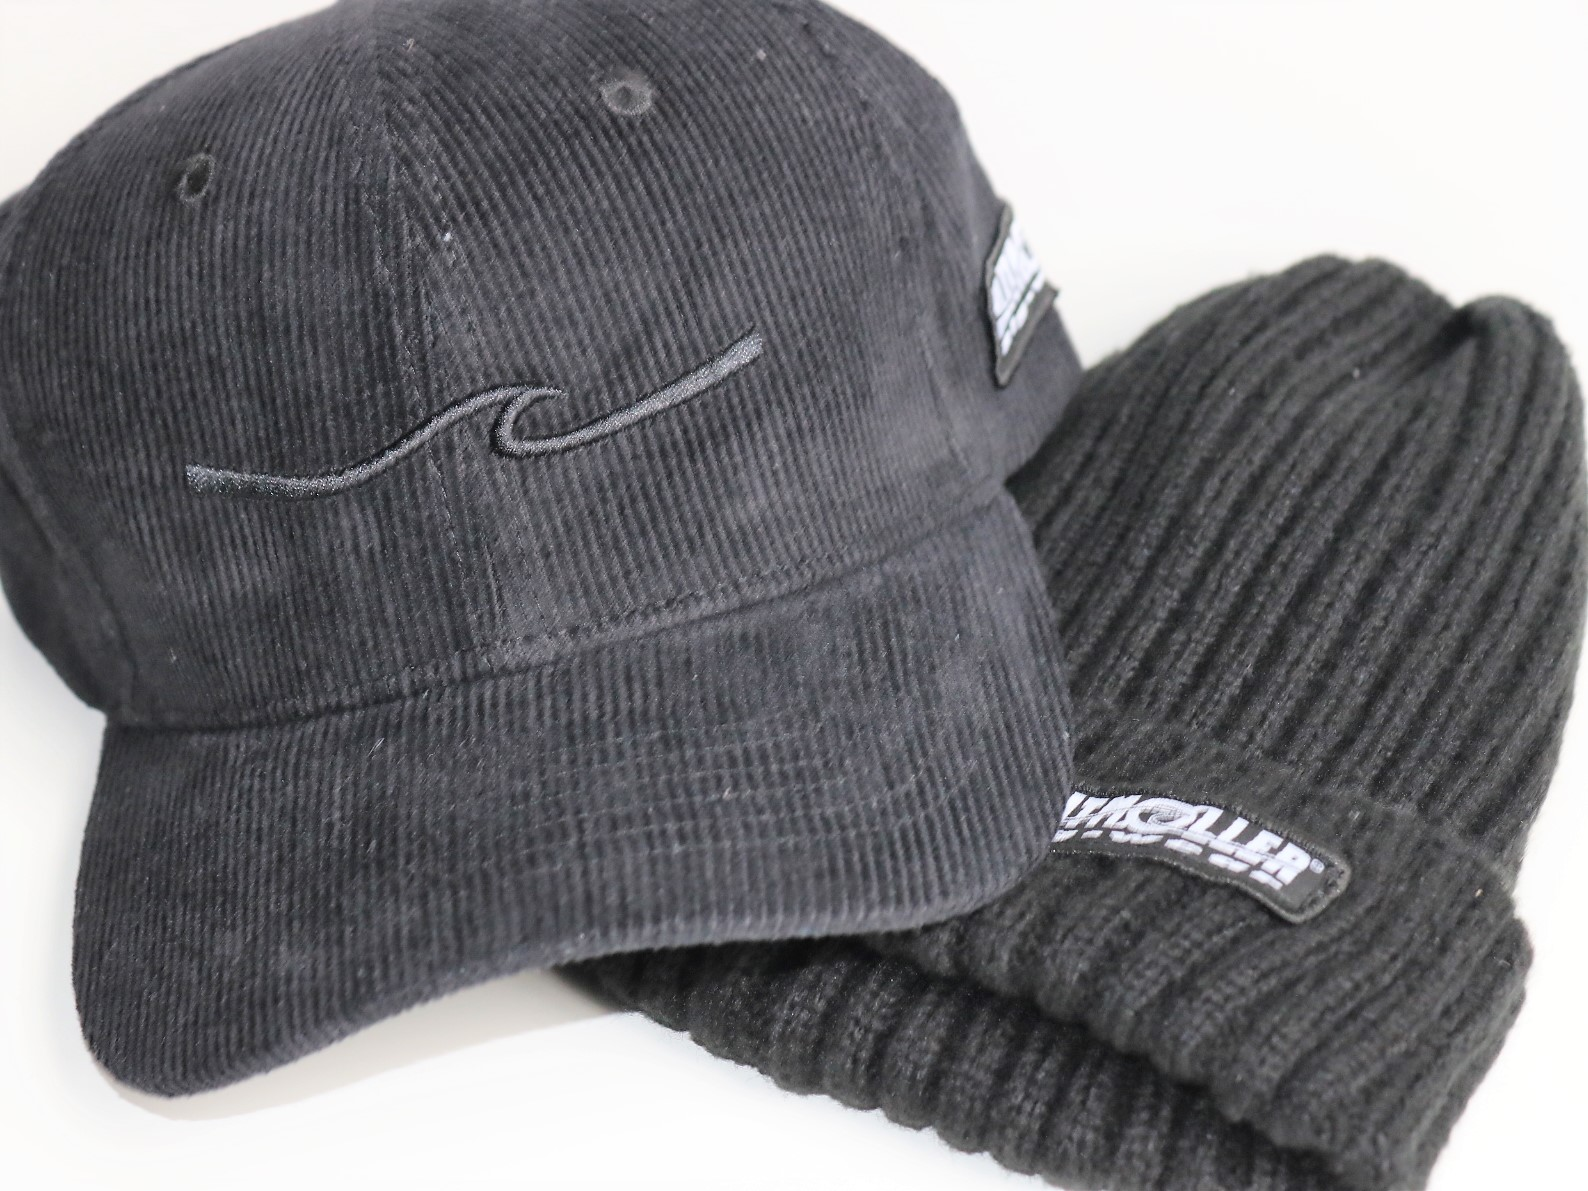 Super Offer: Headwear Pack > Cap+Beanie 398,-